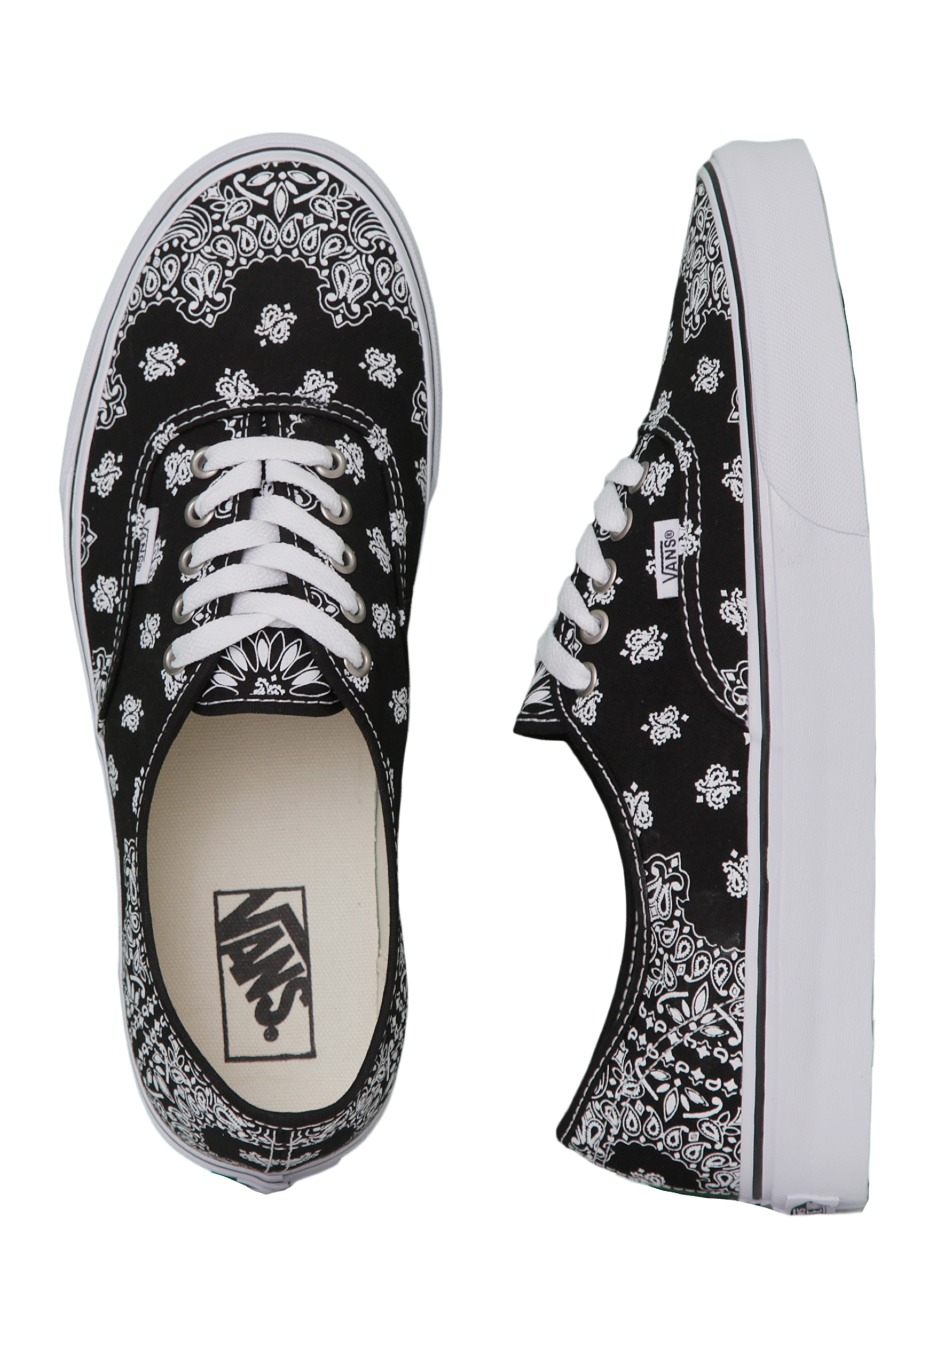 Vans - Authentic Bandana Black/True White - Shoes - Impericon.com Worldwide